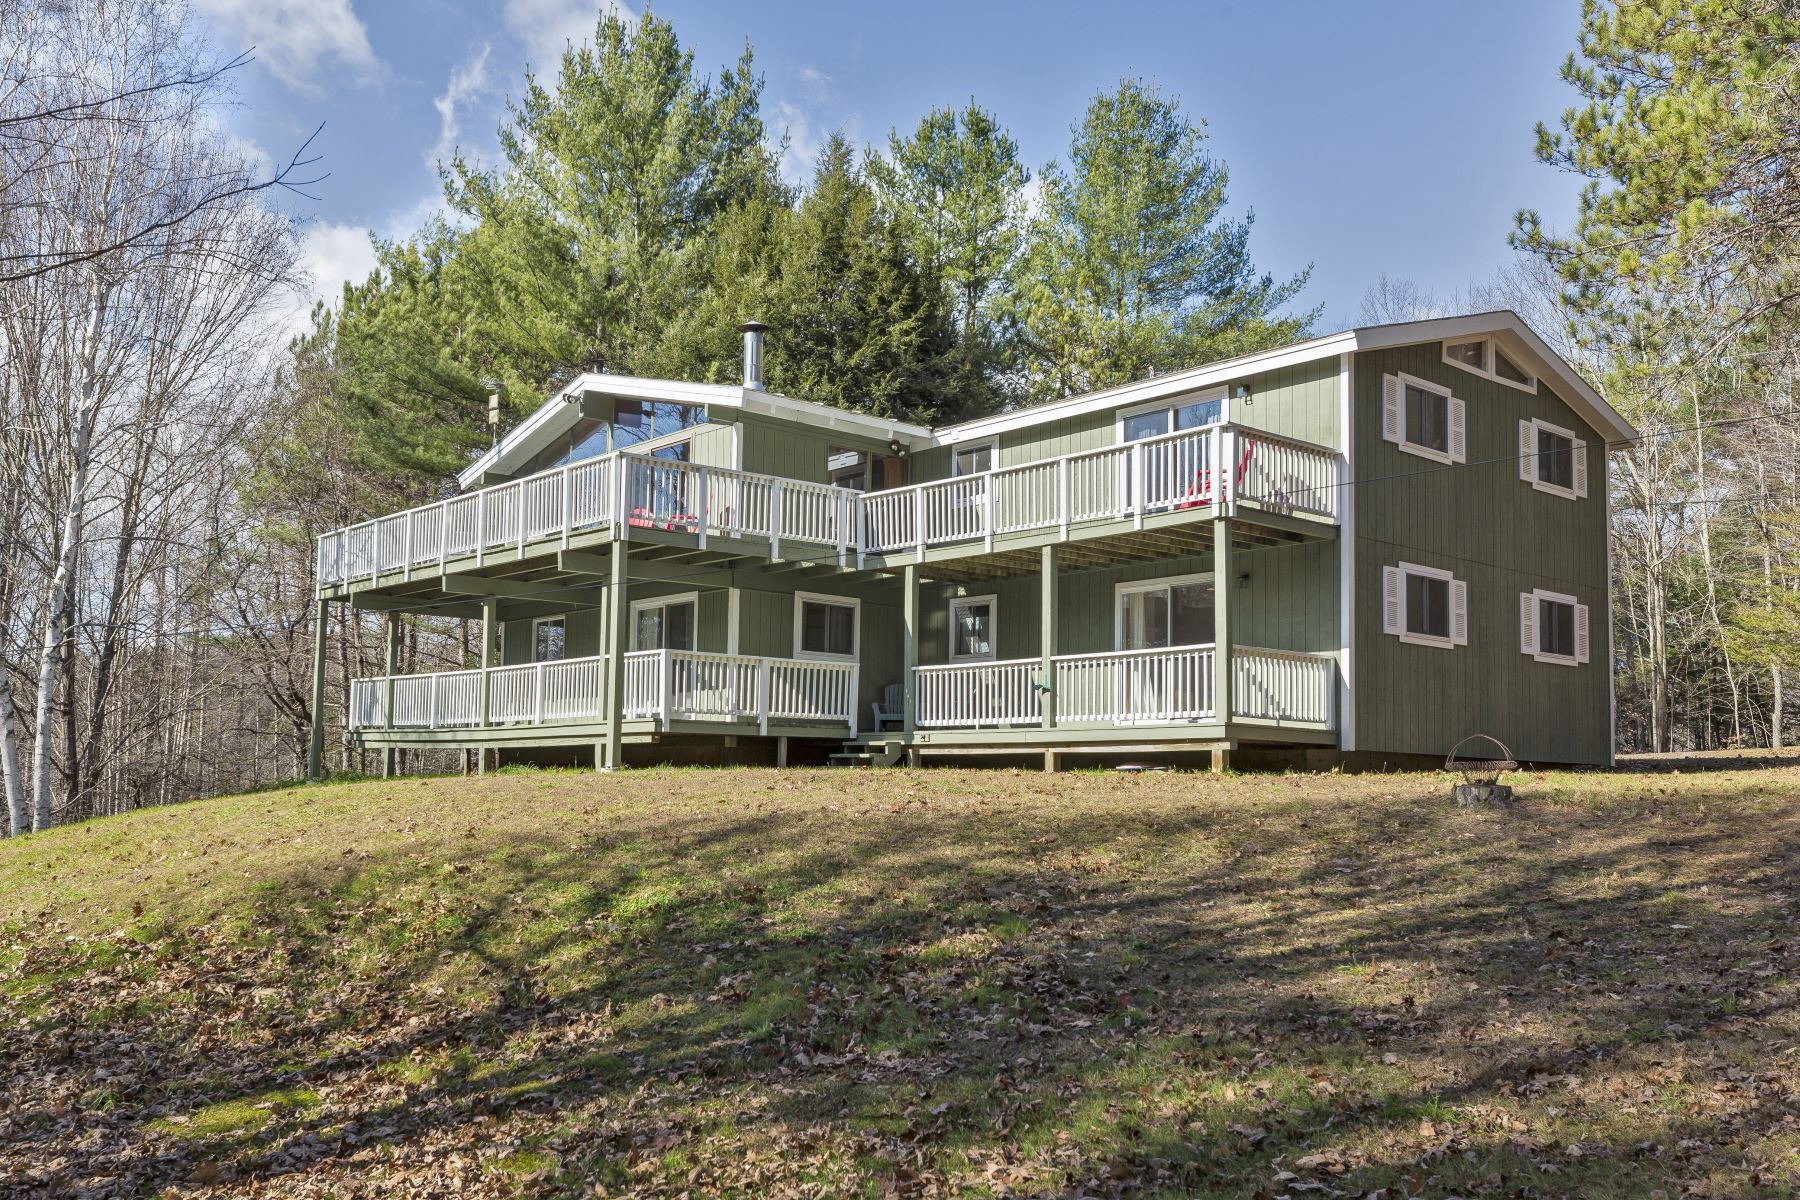 Single Family Homes for Sale at Seven Bedroom Shalet in Brownsville 160 Strawberry Hill Road West Windsor, Vermont 05037 United States